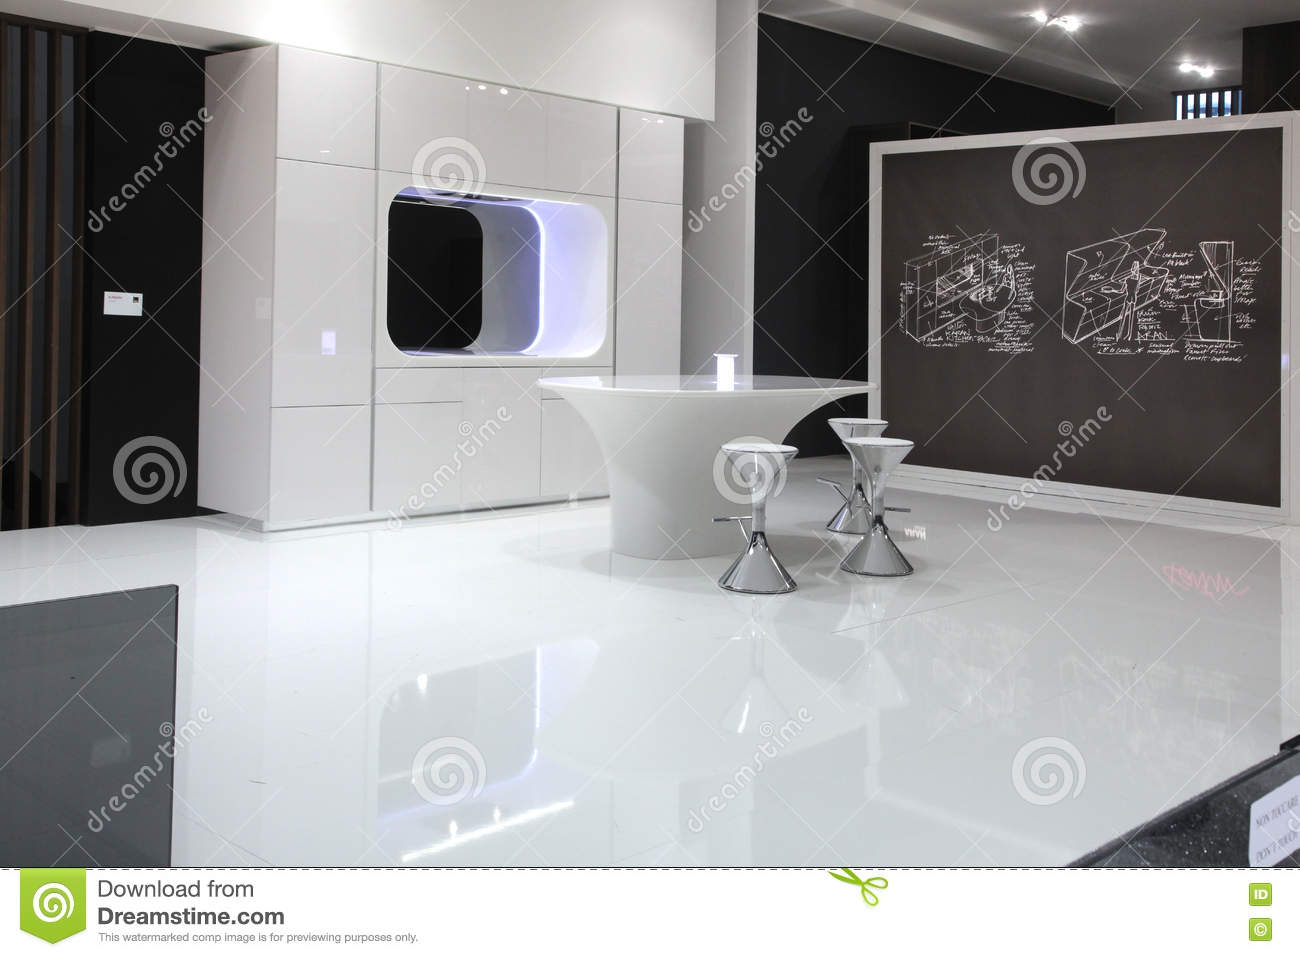 futuristic kitchen in black and white - Futuristic Kitchen